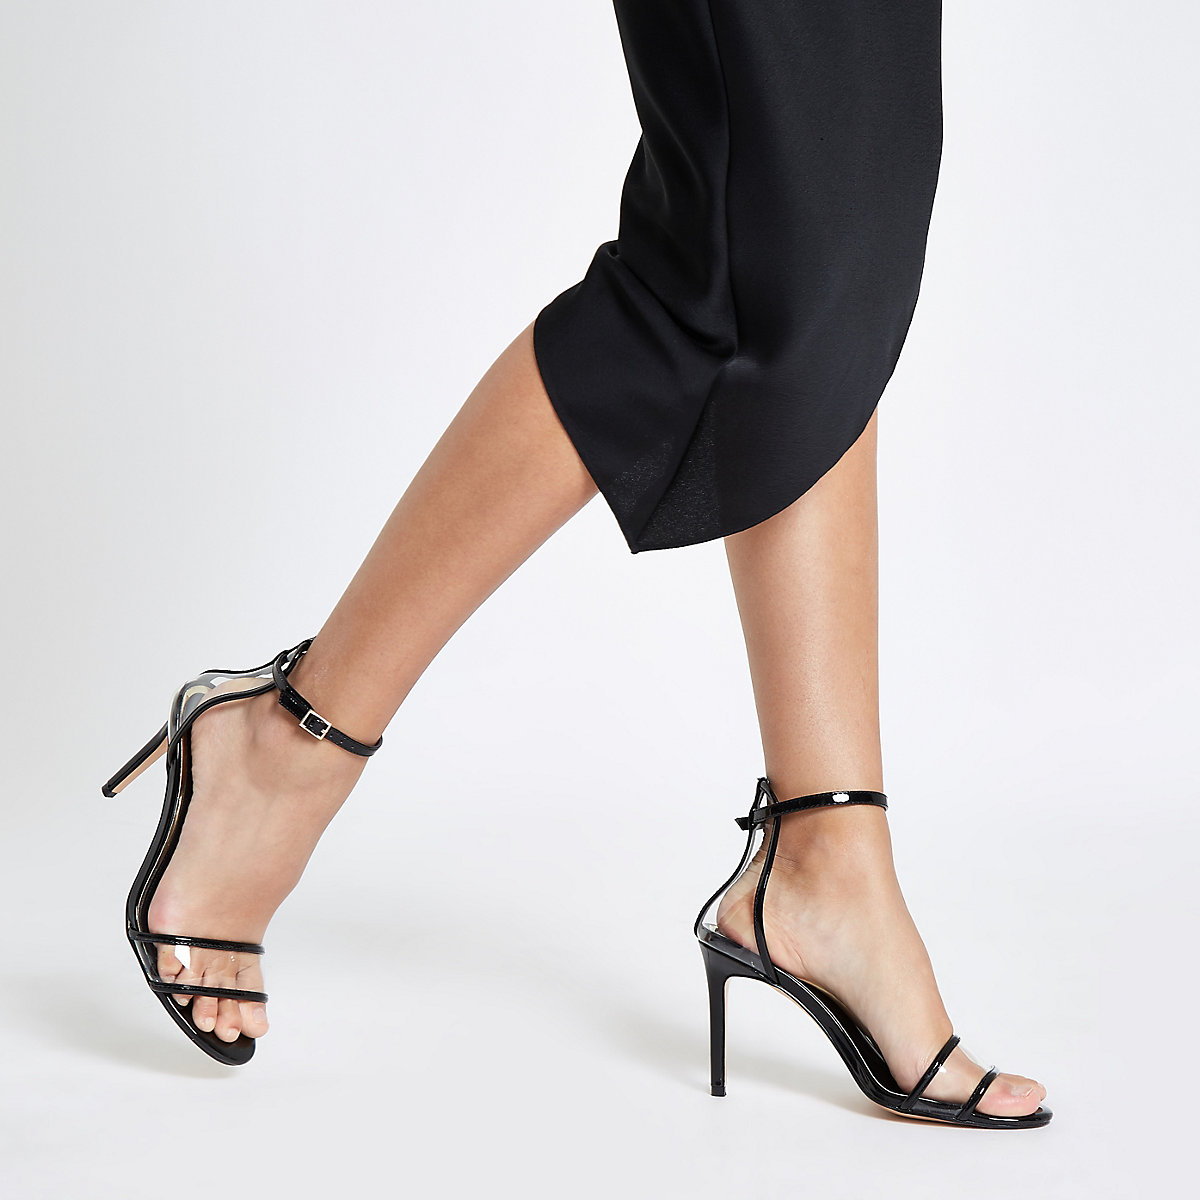 fbbae8605b7464 ... Black perspex barely there sandals ...